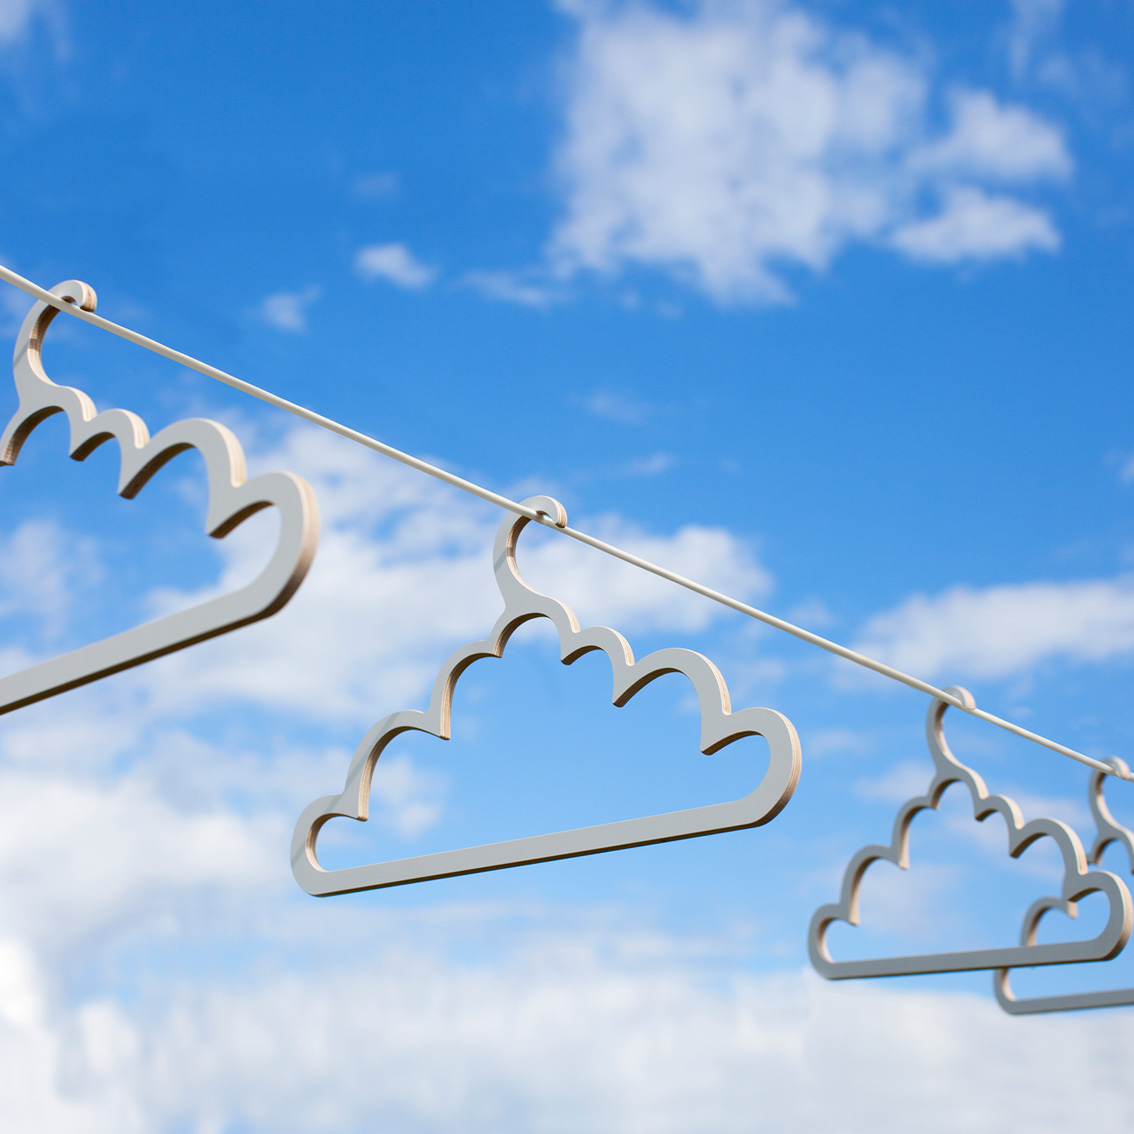 Cloud clot hangers